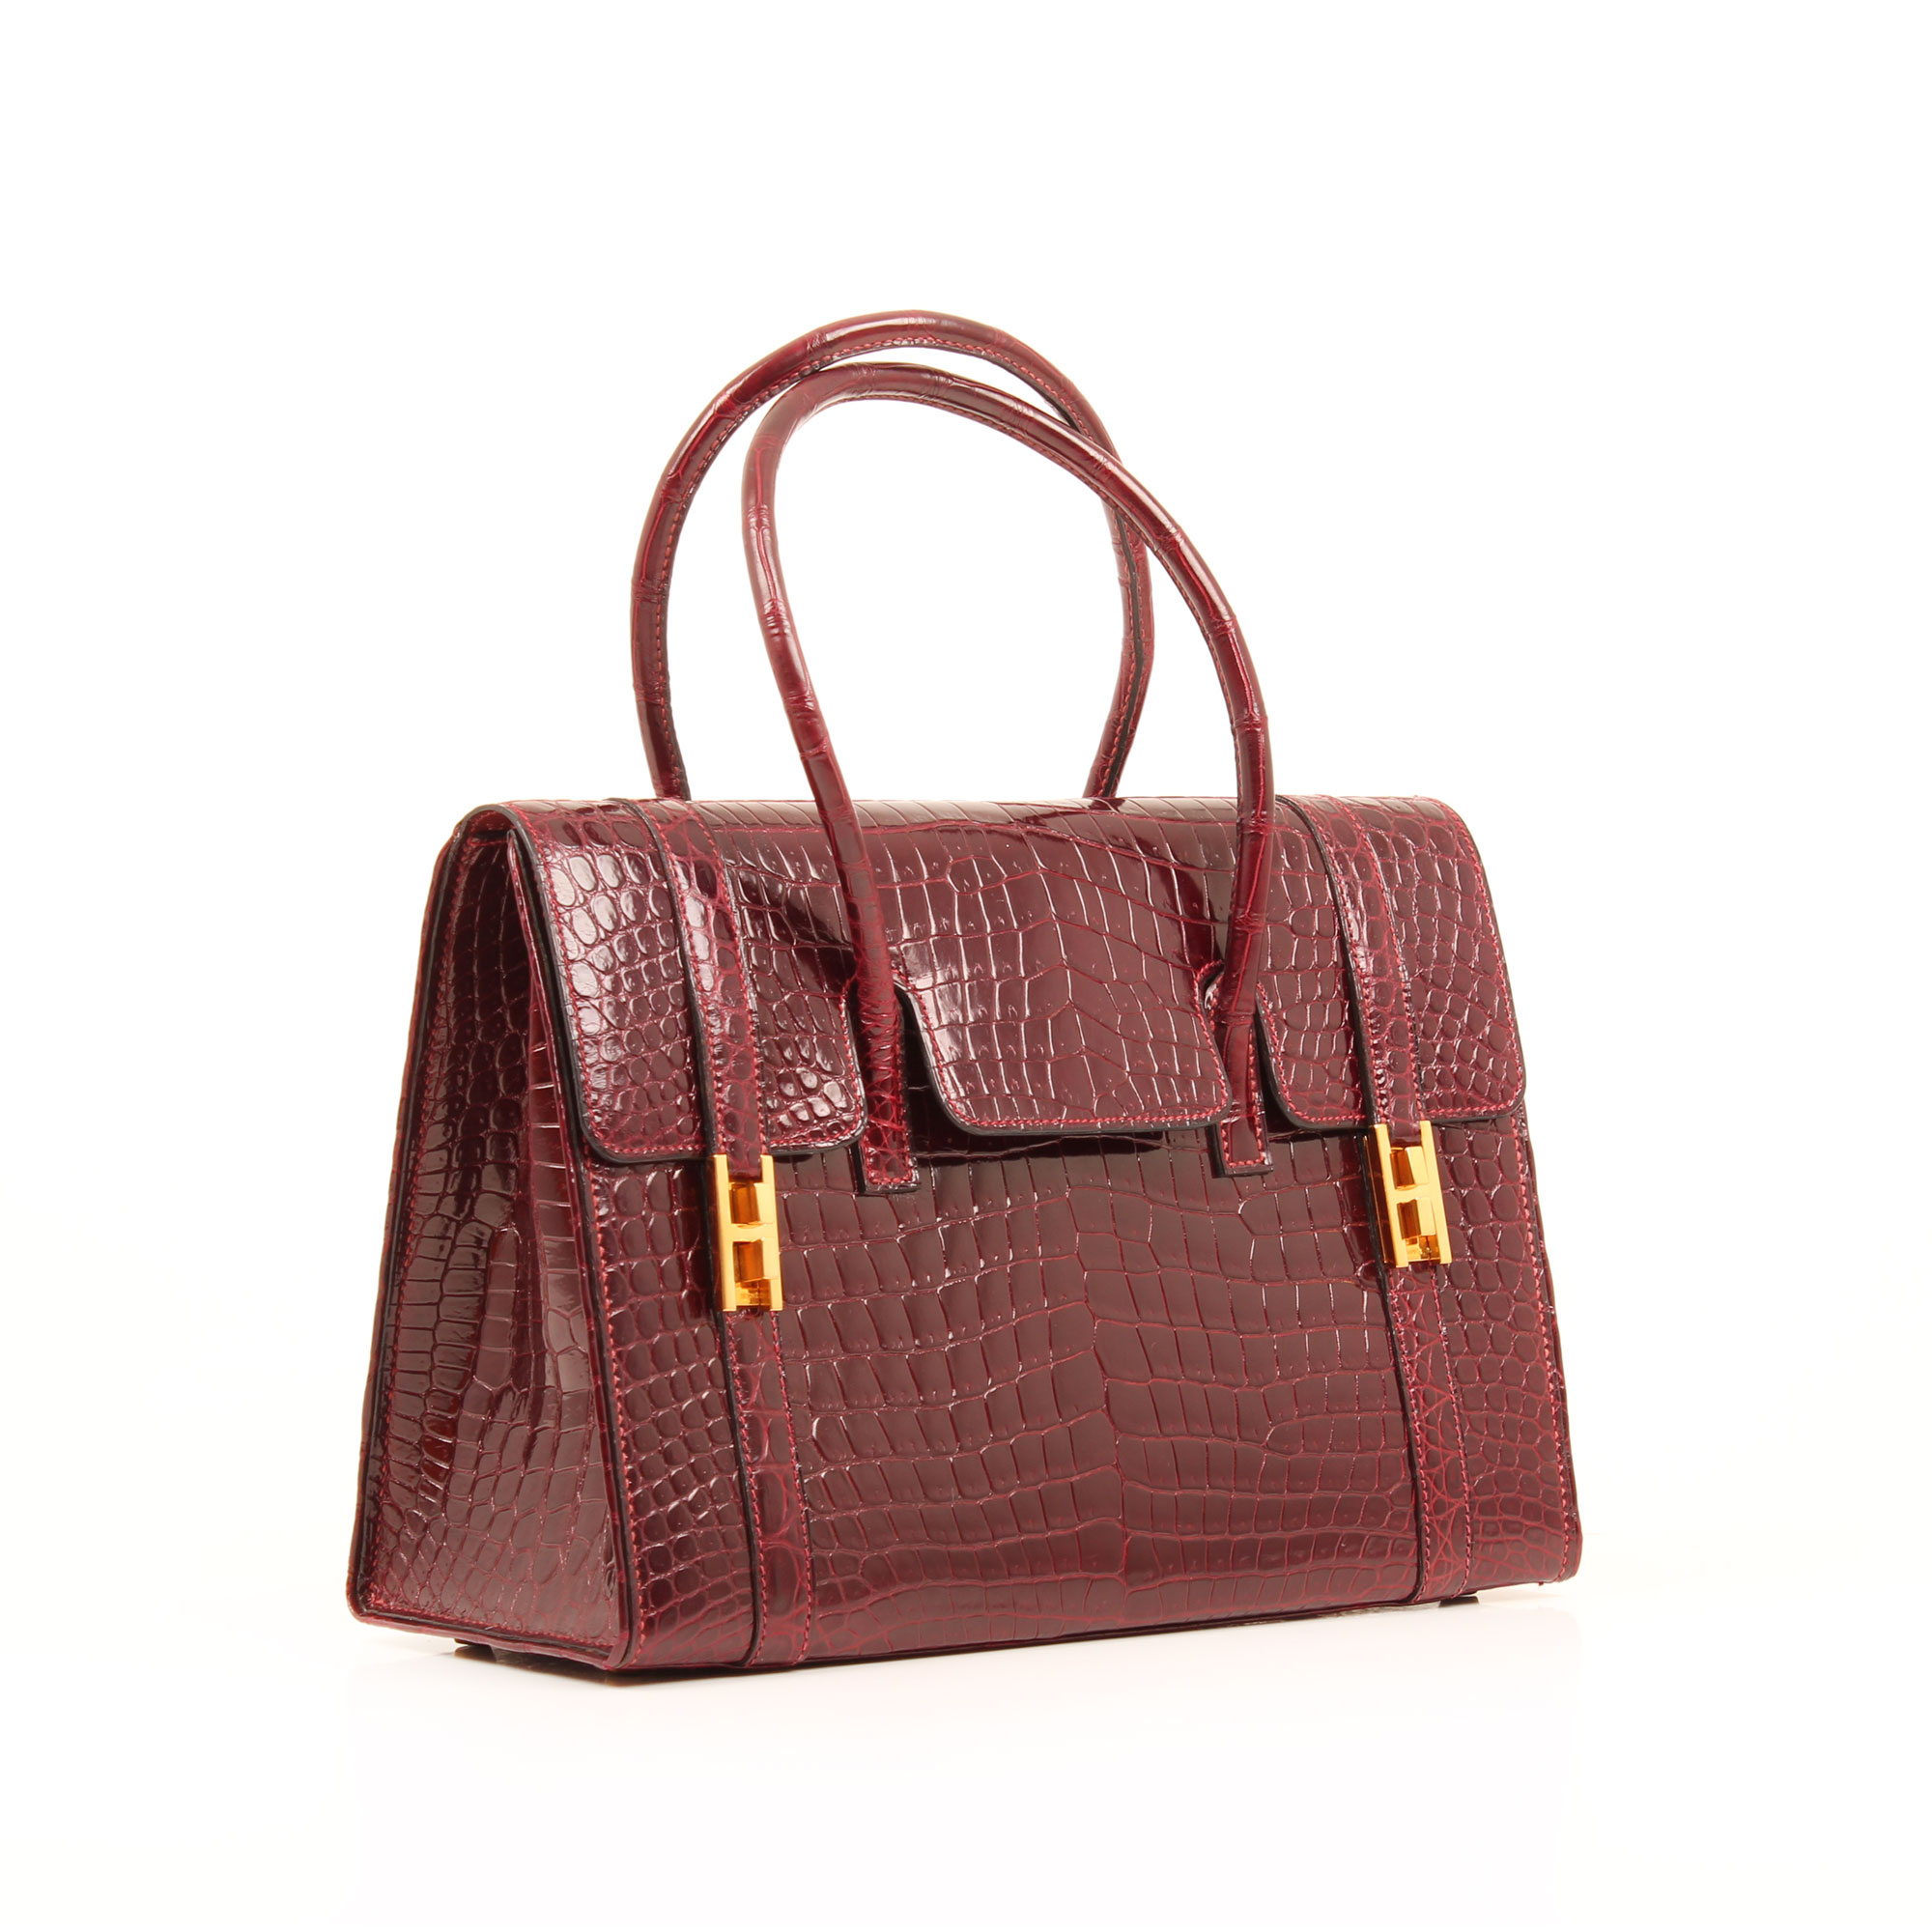 General image 2 of hermes drag vintage croco bag porosus raspberry color